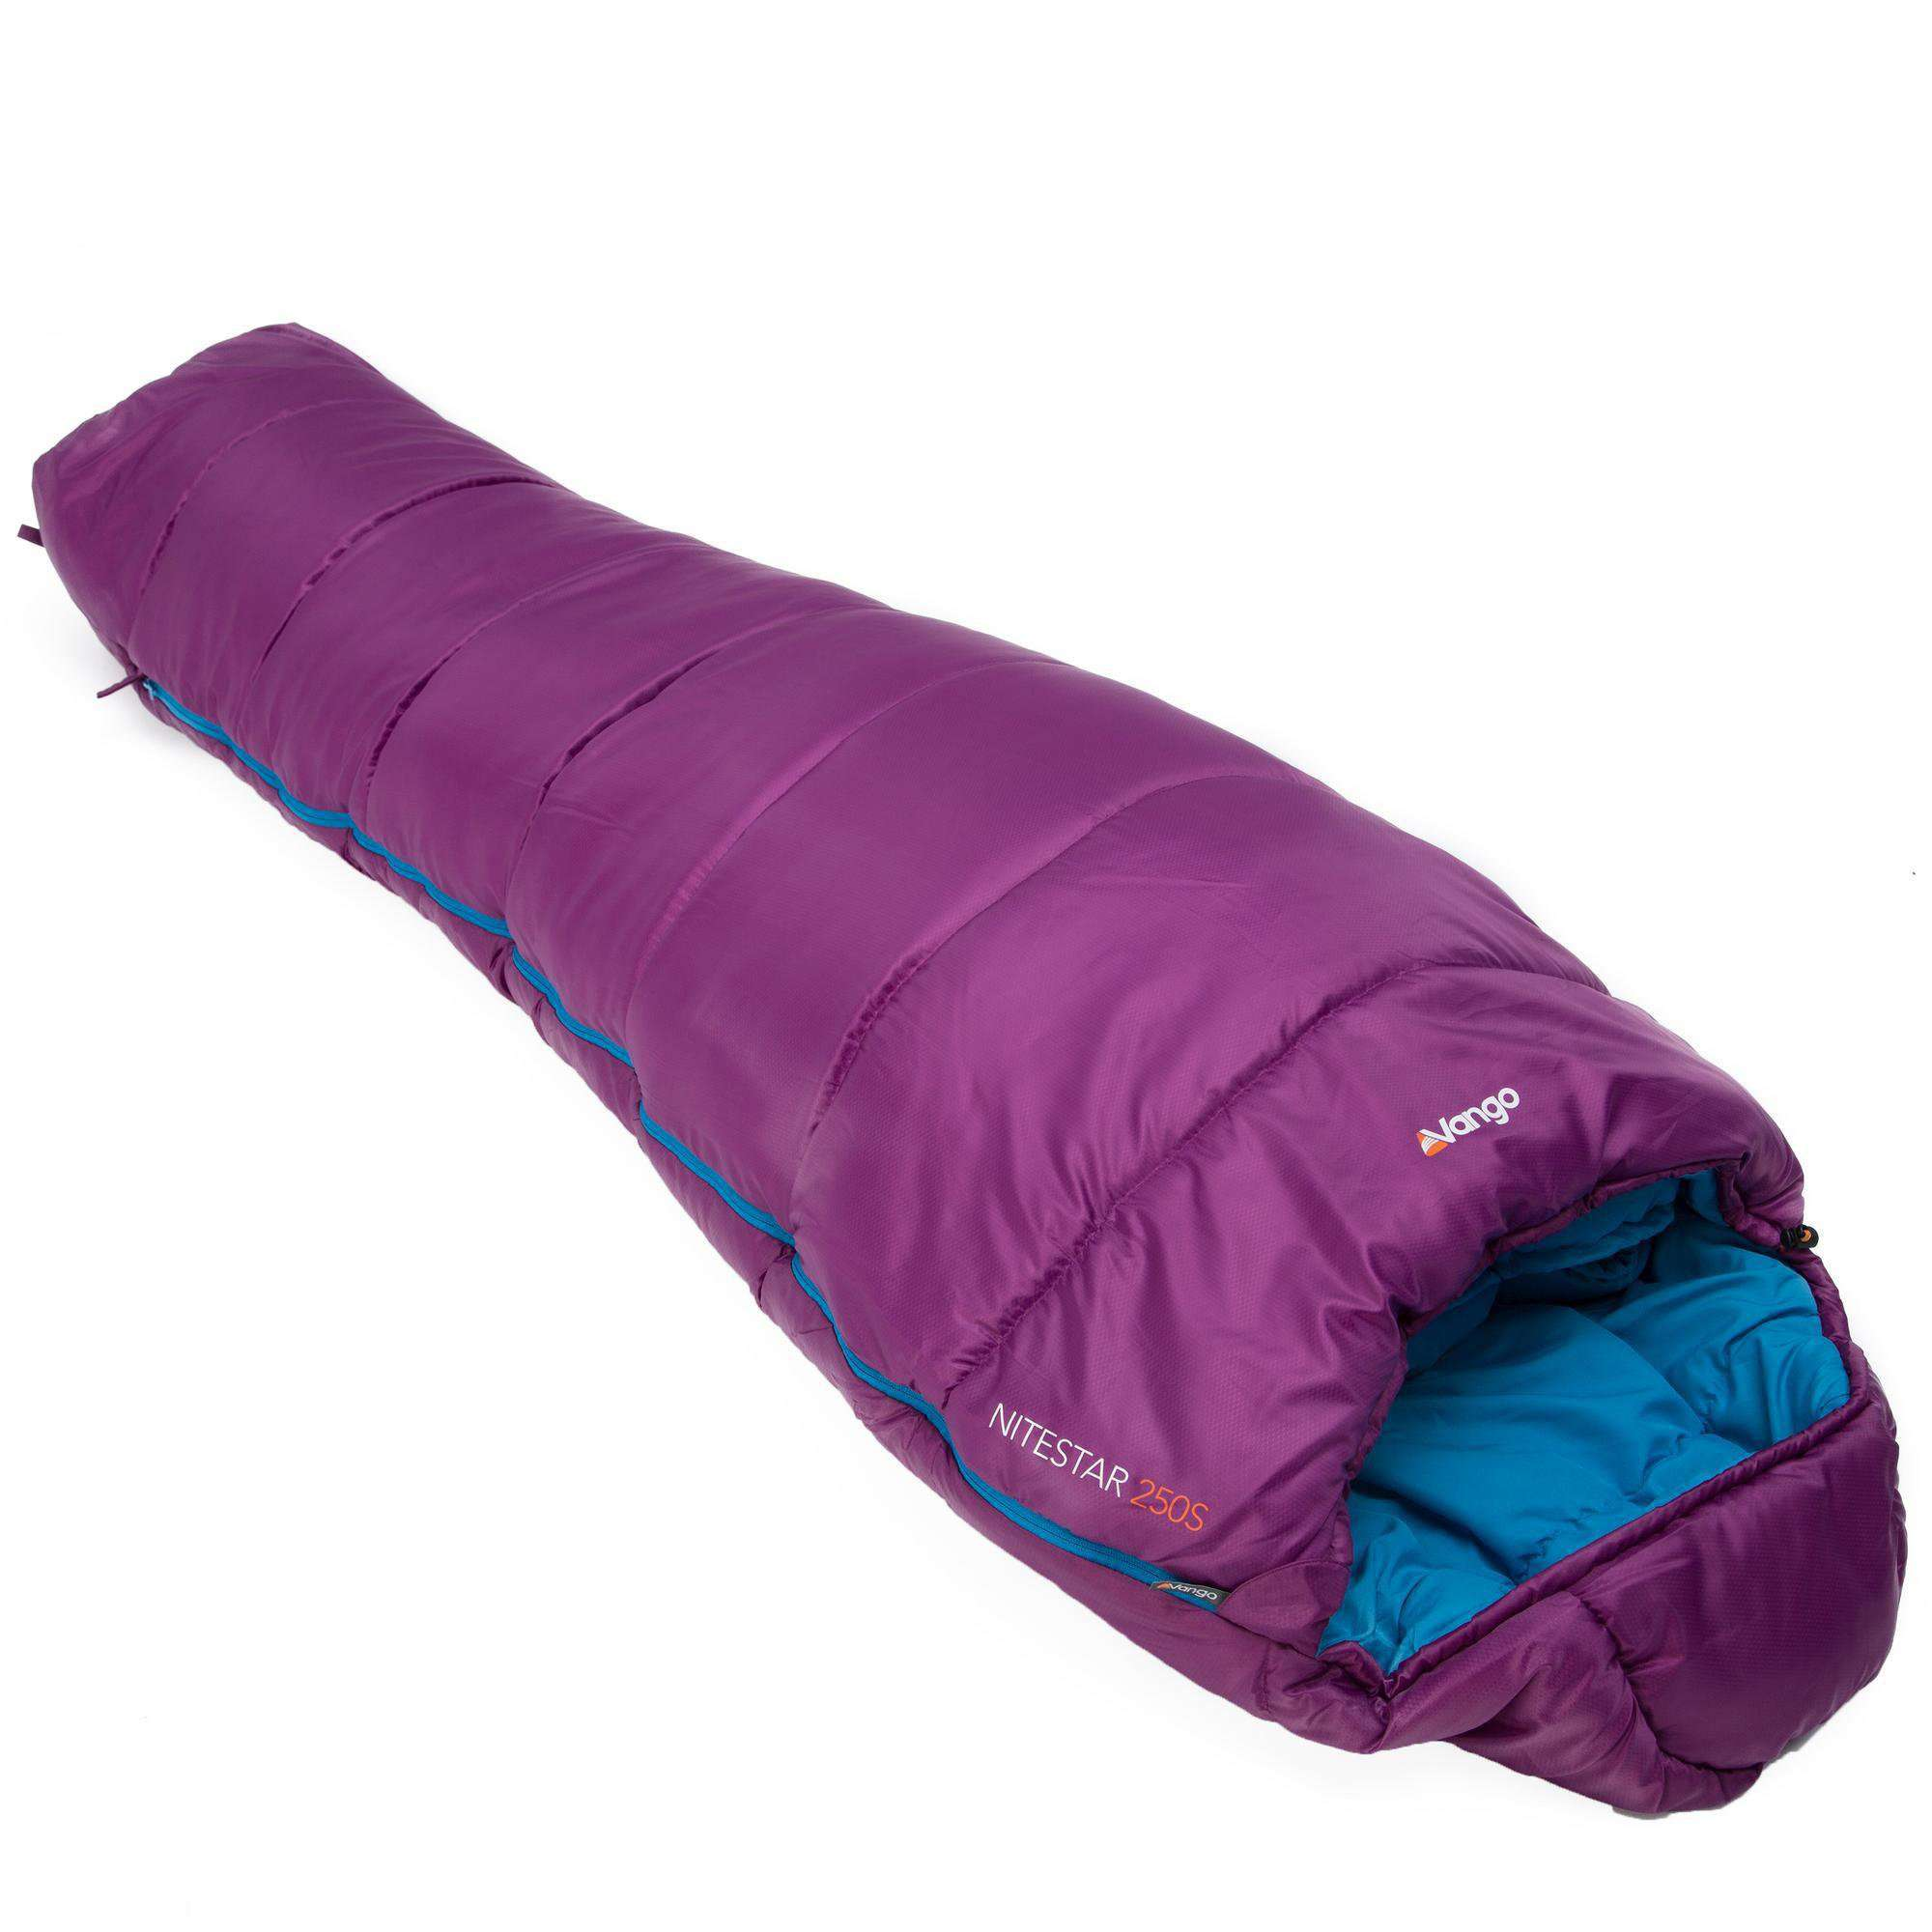 VANGO Nitestar 250S Sleeping Bag